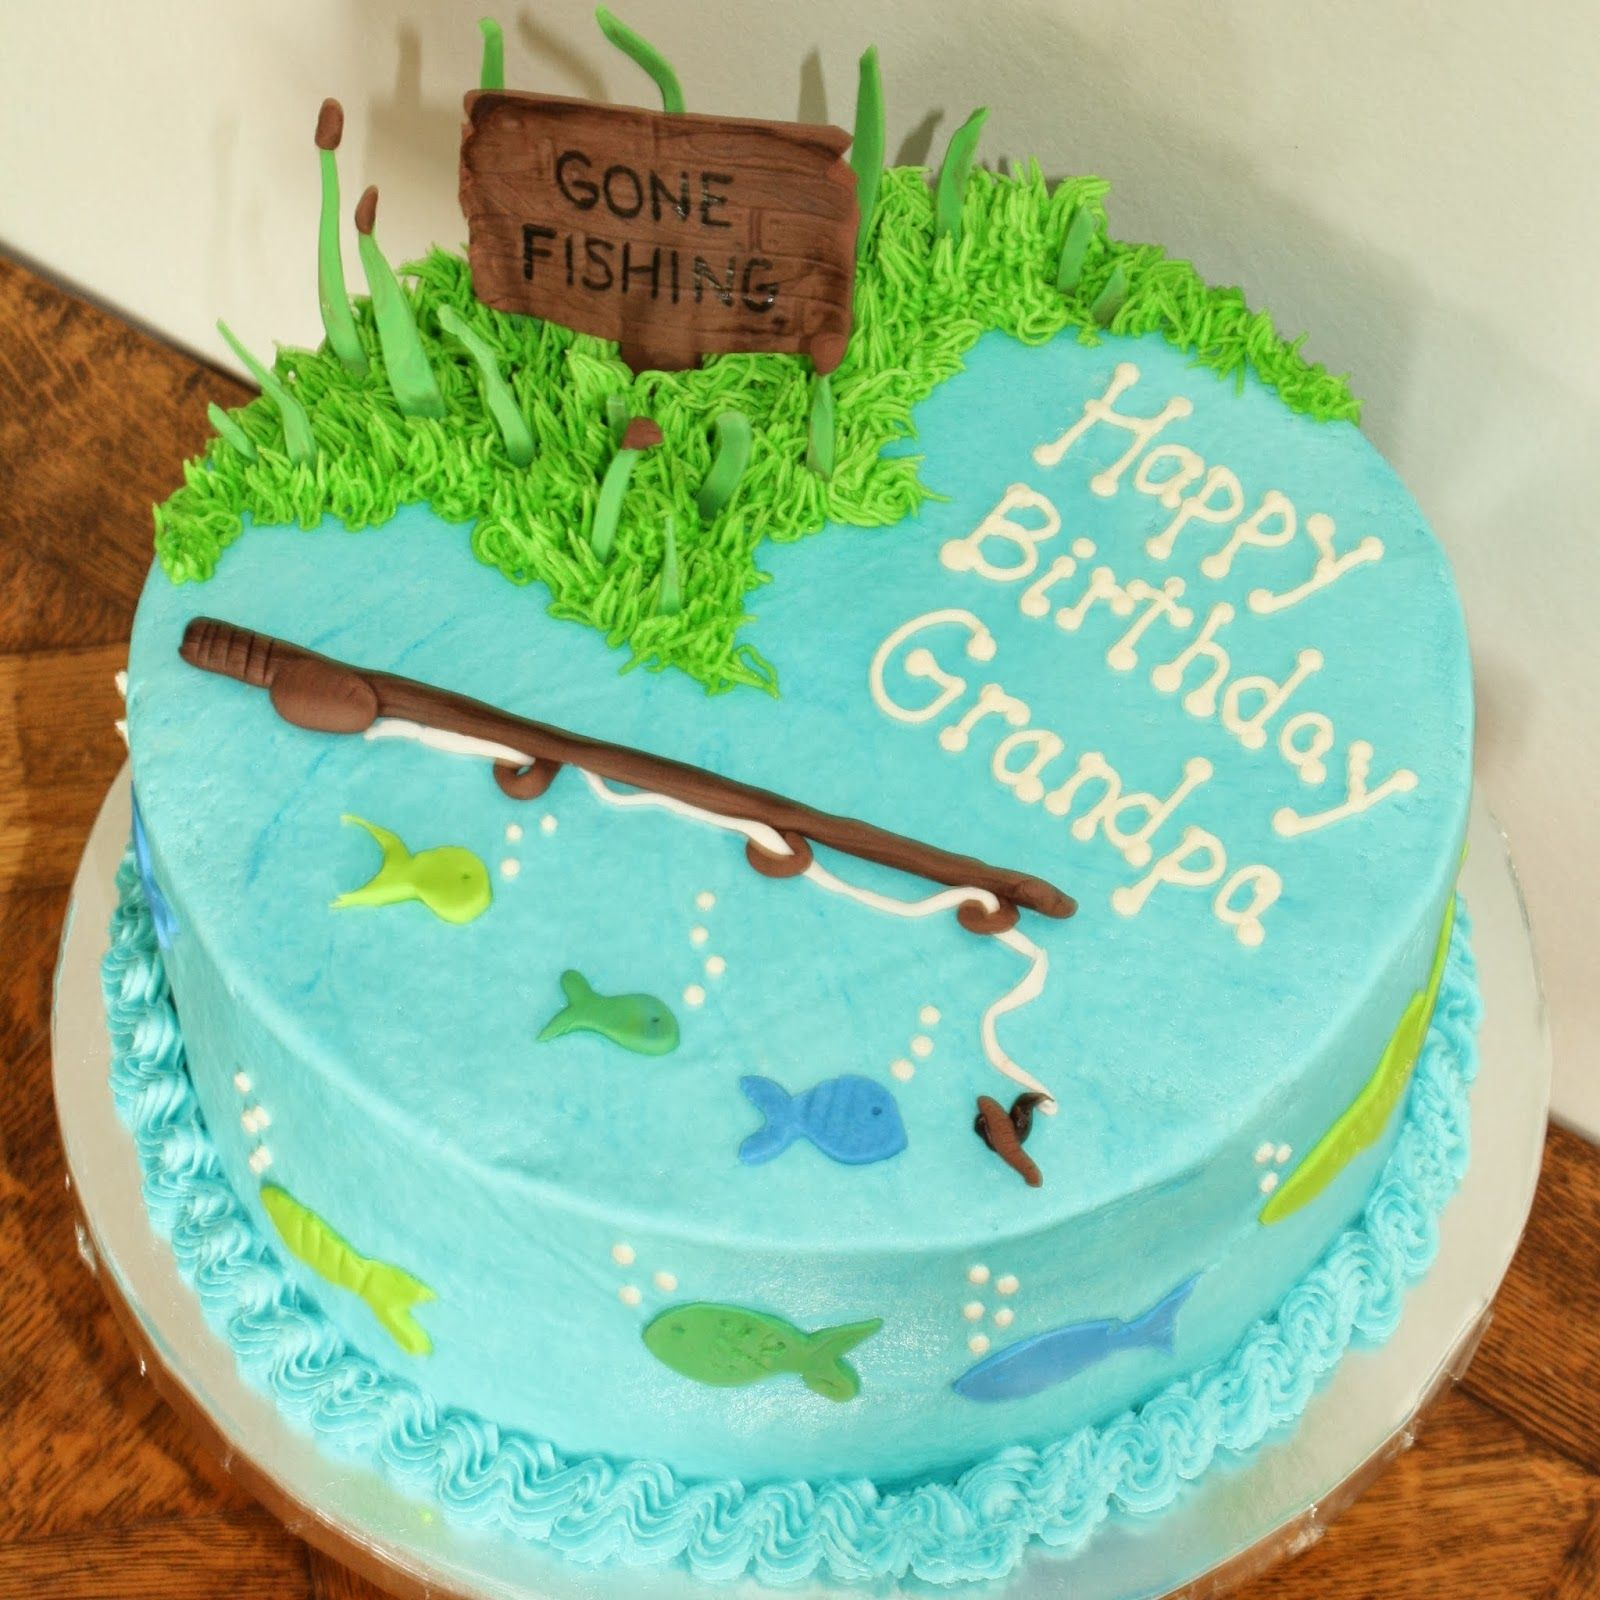 Gone Fishing Cake With Images Fish Cake Birthday Gone Fishing